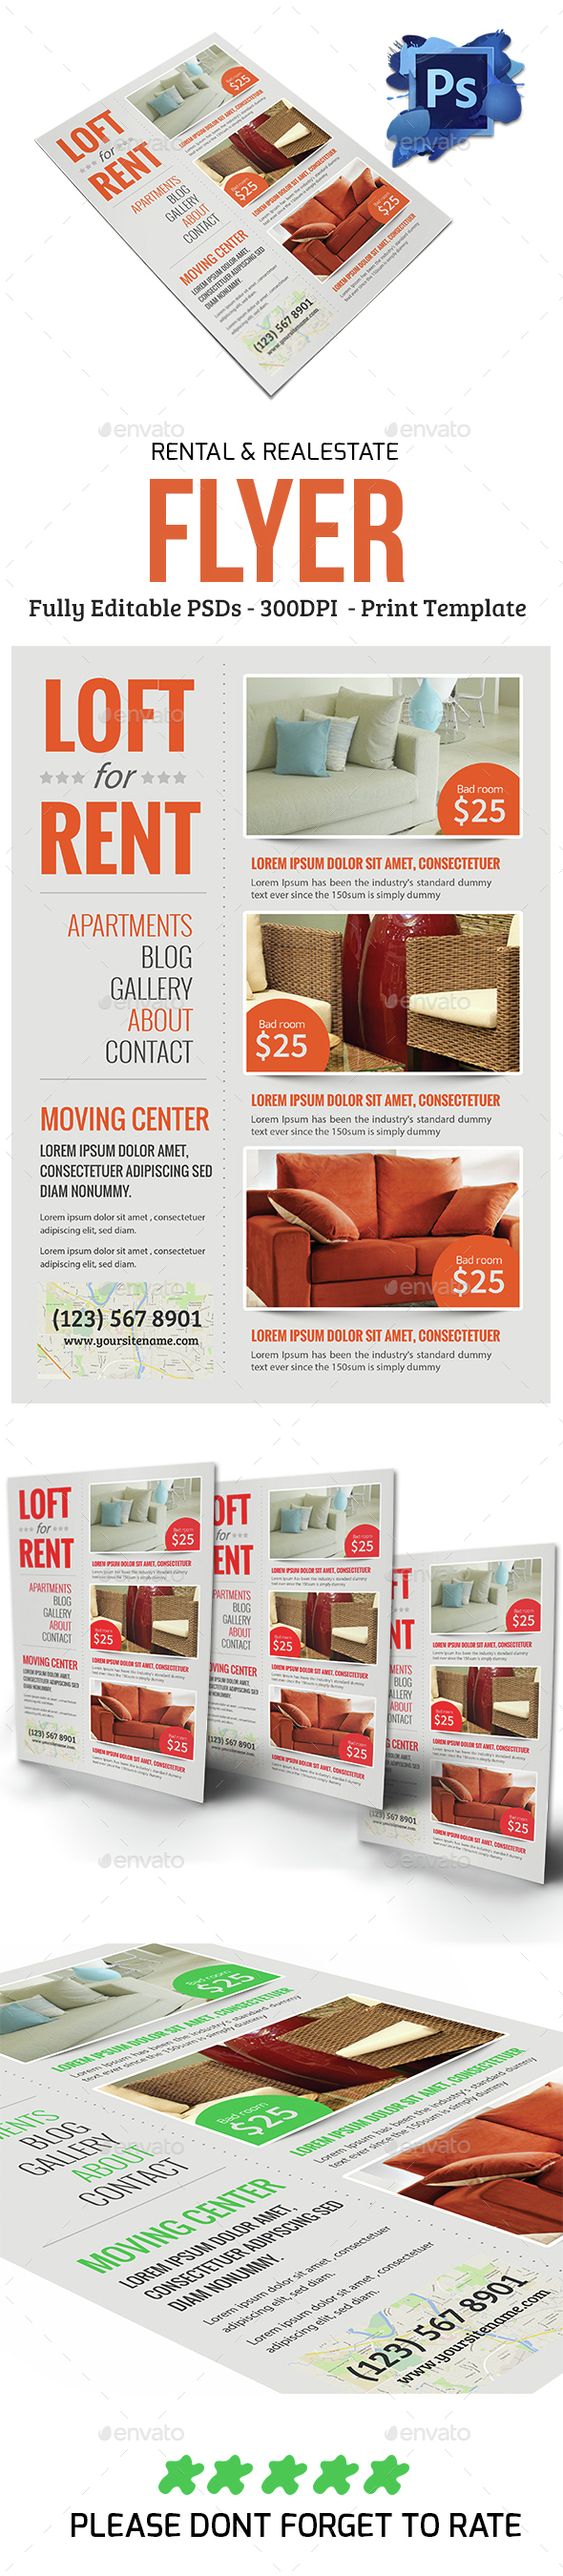 Real estate & Rental Flyer